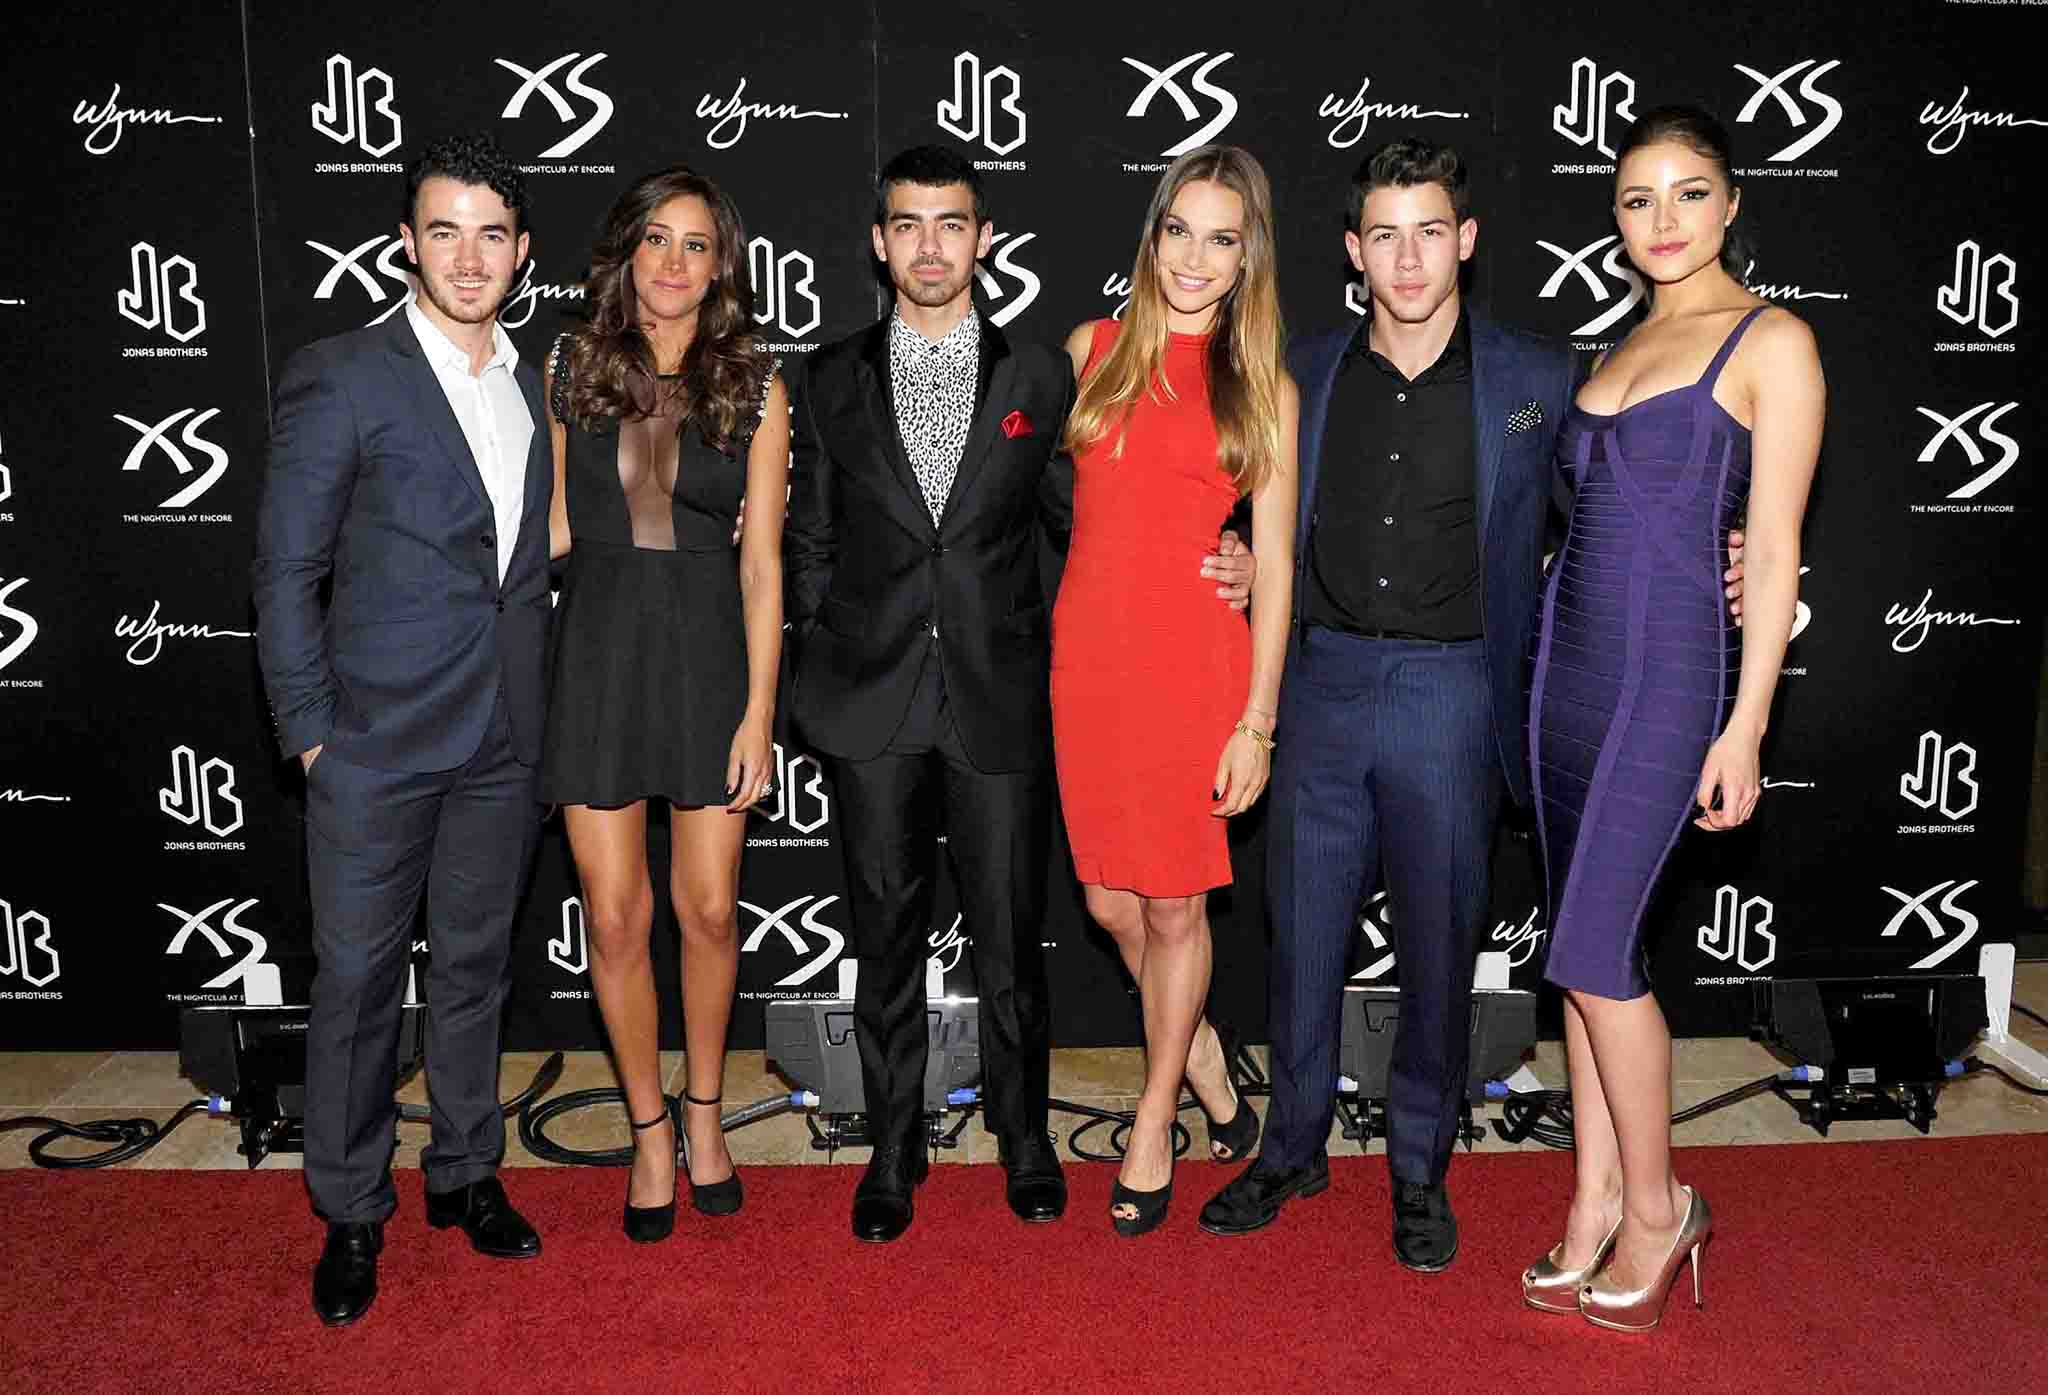 The Jonas clan gathers on the red carpet (WireImage)